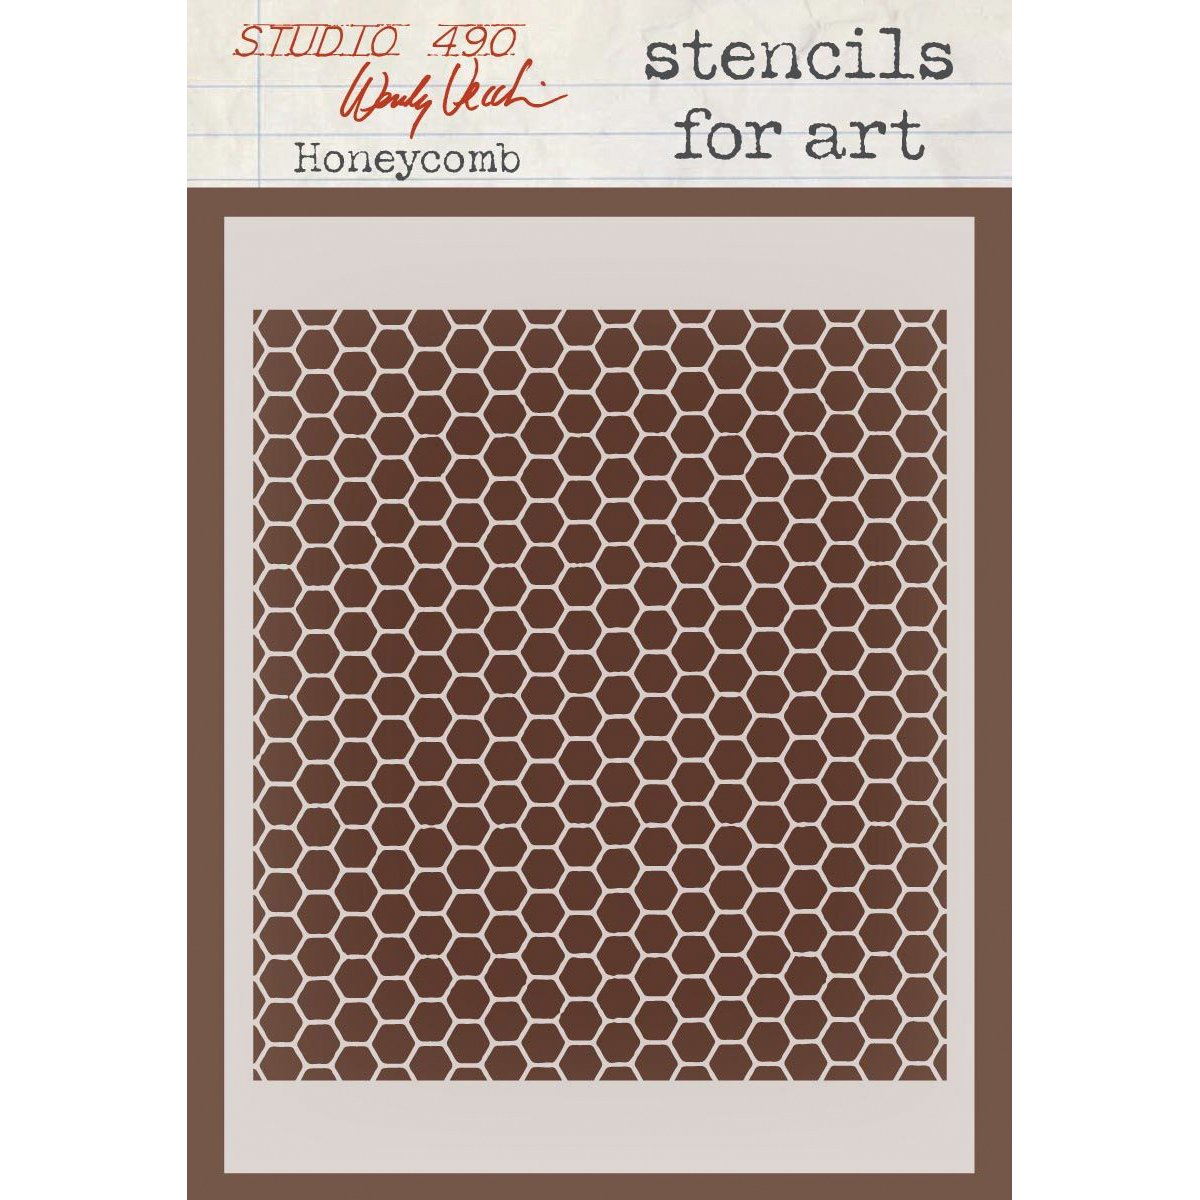 Stampers Anonymous Wendy Vecchi Studio Stencil Collection, 6.5-Inch by 4.5-Inch, Honeycomb SFA-18